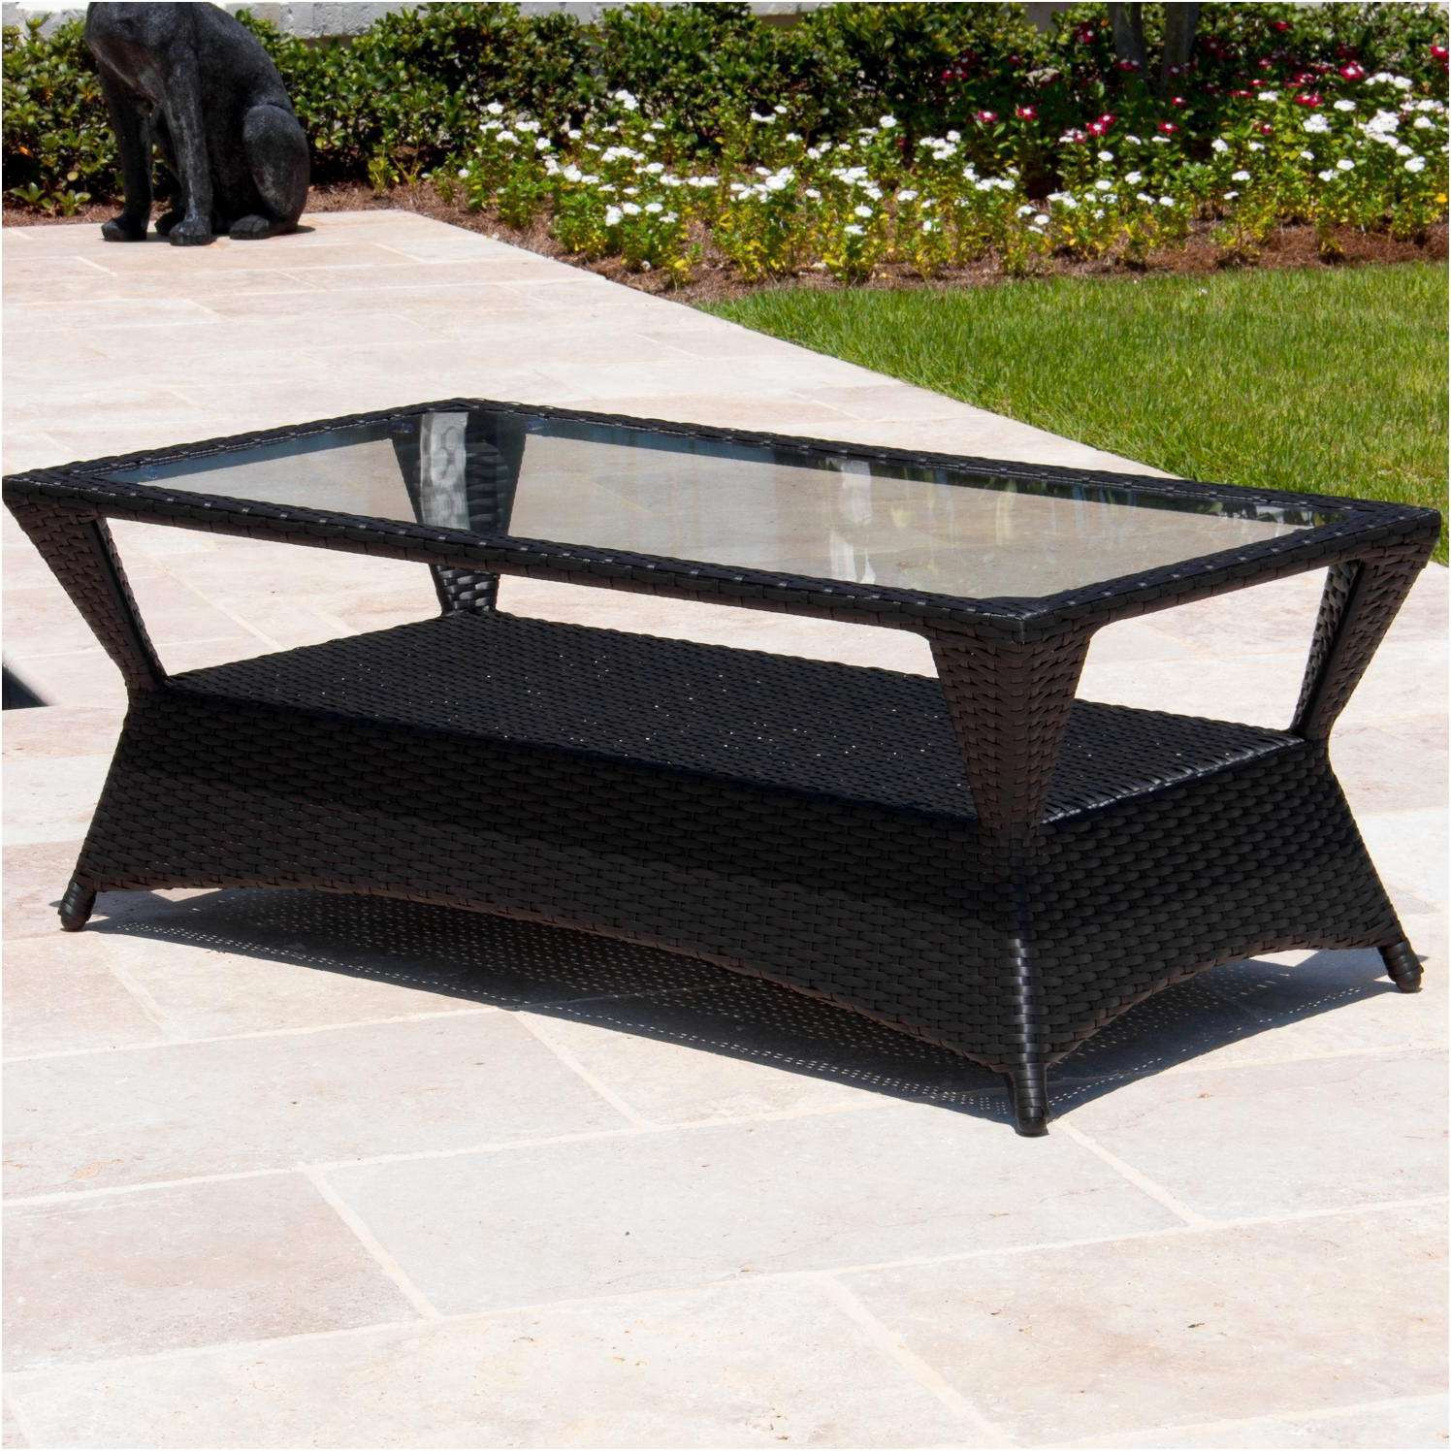 blue vase fountain of 46 luxueux pot a epice apera§u regarding coffee tables rowan od small outdoor coffee table concrete round ideas rectangular outdoor coffee table